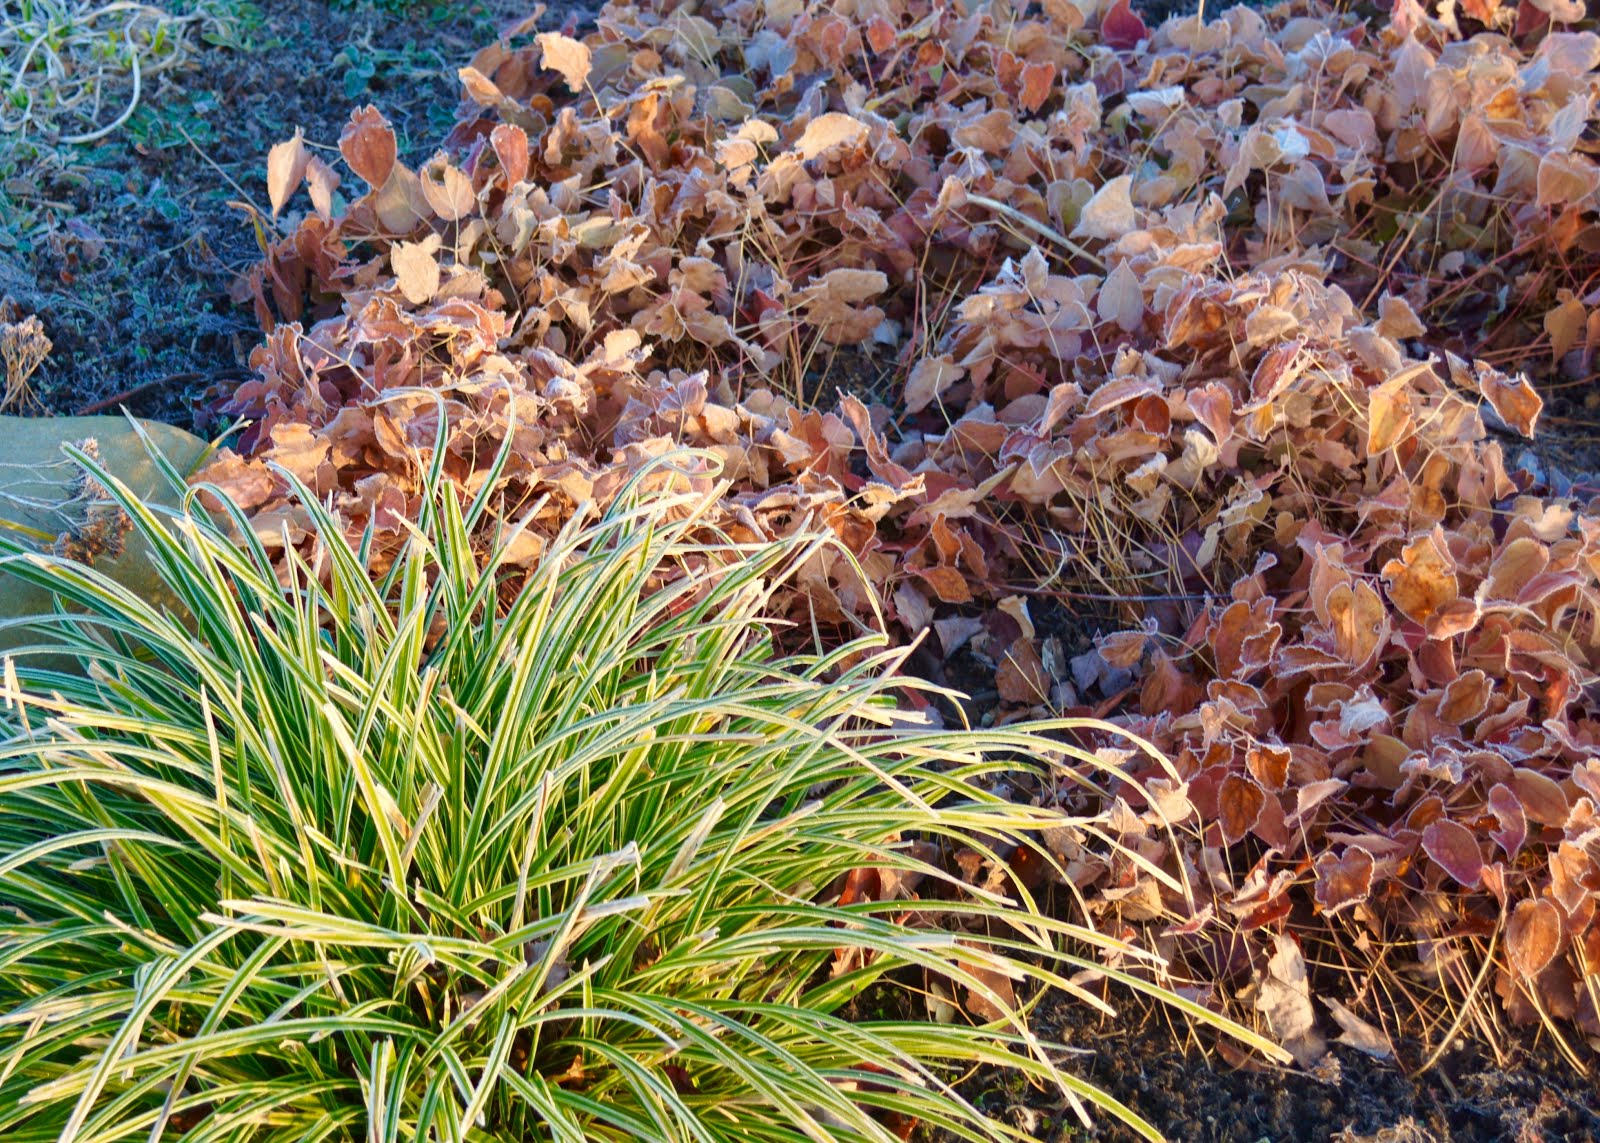 ... But The Warm Color Is Nice With A Clump Of Still Green U0027Ice Danceu0027 Carex  Next To It. These Are Two Tough Plants That Laugh At Winter.